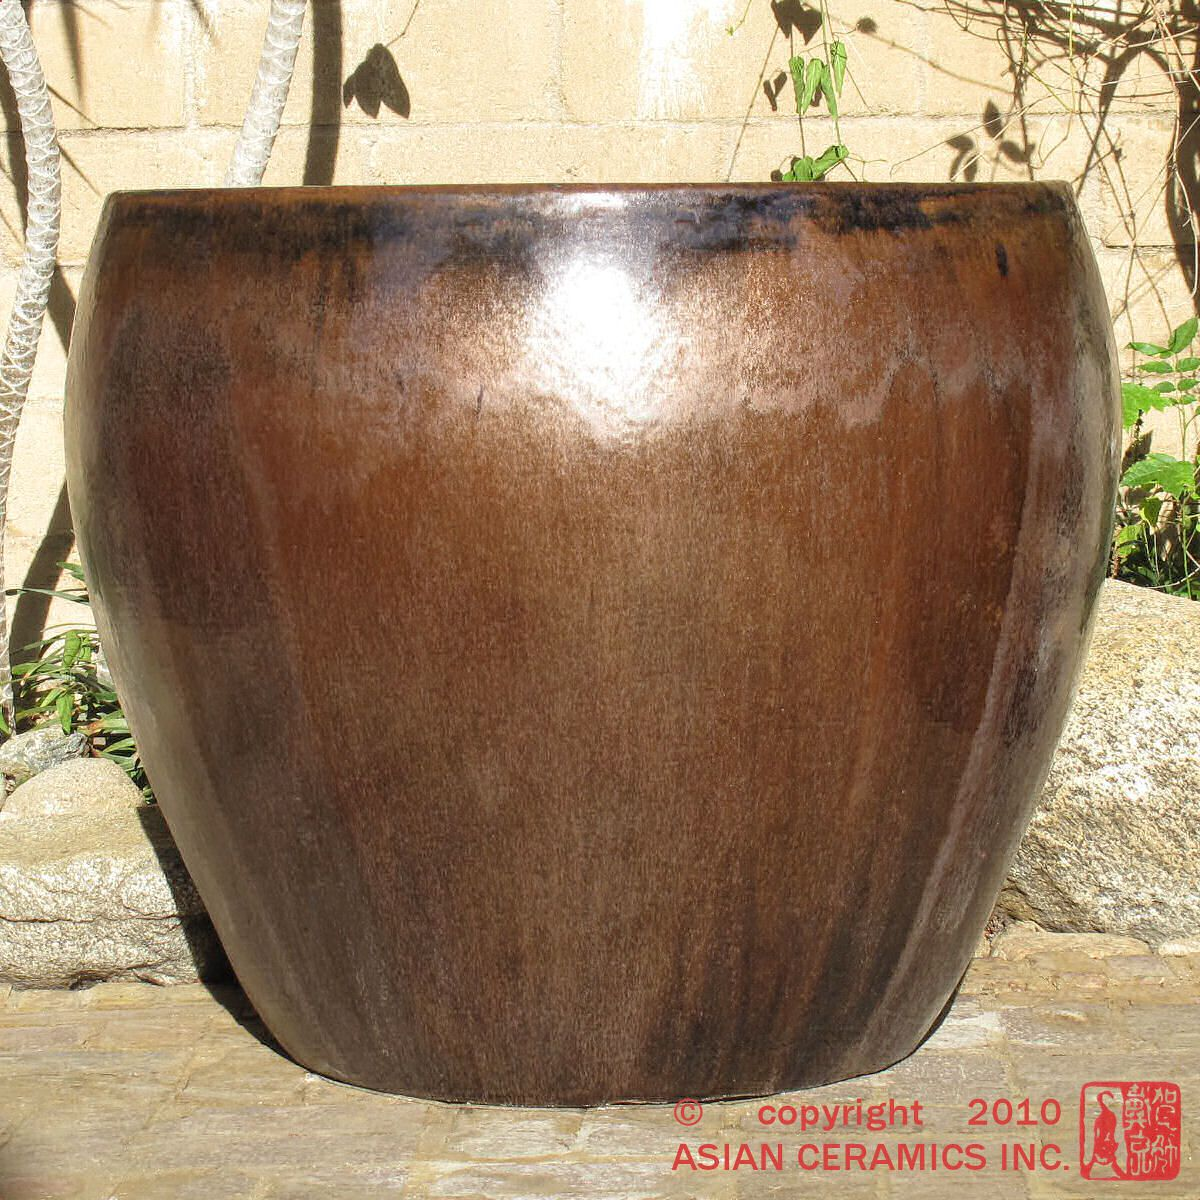 Explore Large Planters, Large Pots, and more! - Extra Large Planters - Google Search Extra Large Pots